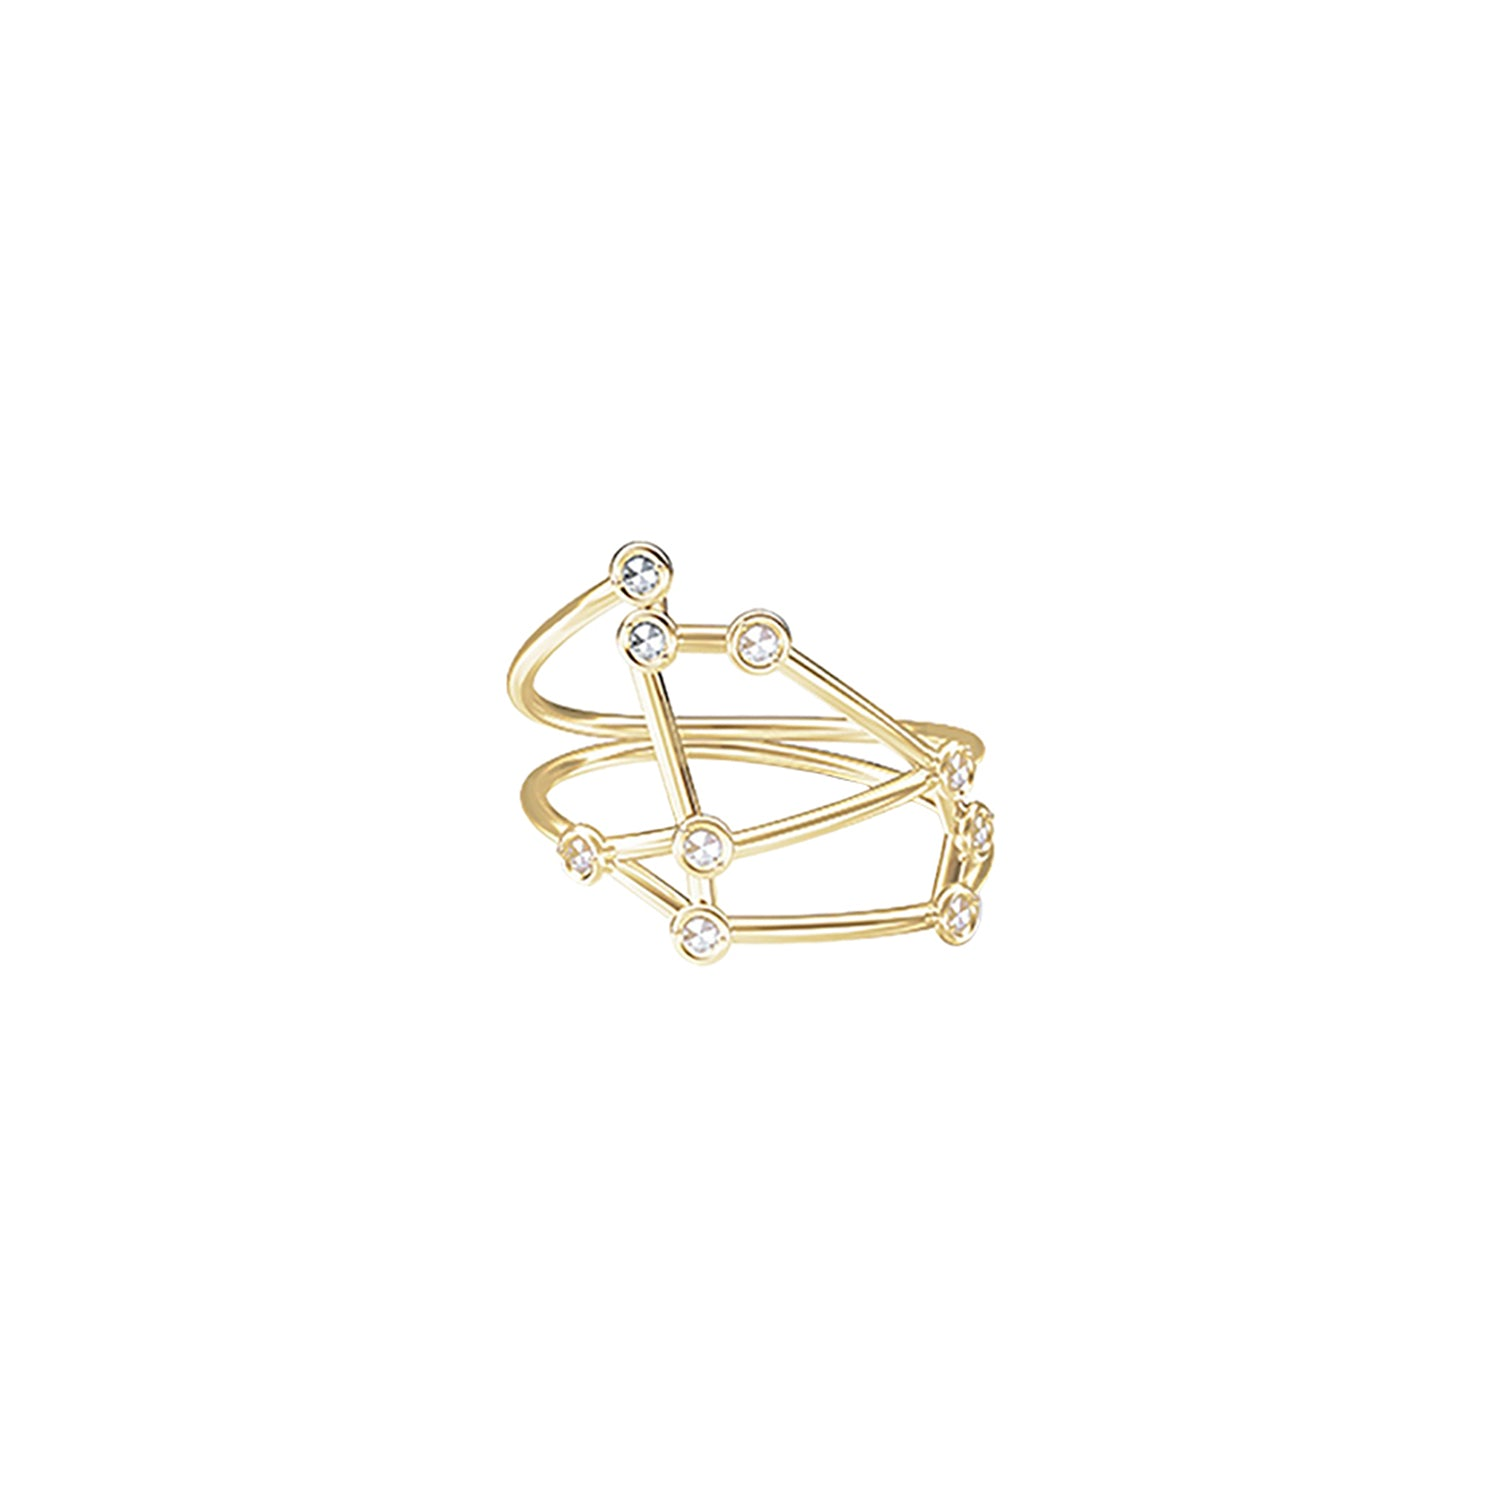 Gold & White Diamond Aries Constellation Ring by Jessie Ve for Broken English Jewelry